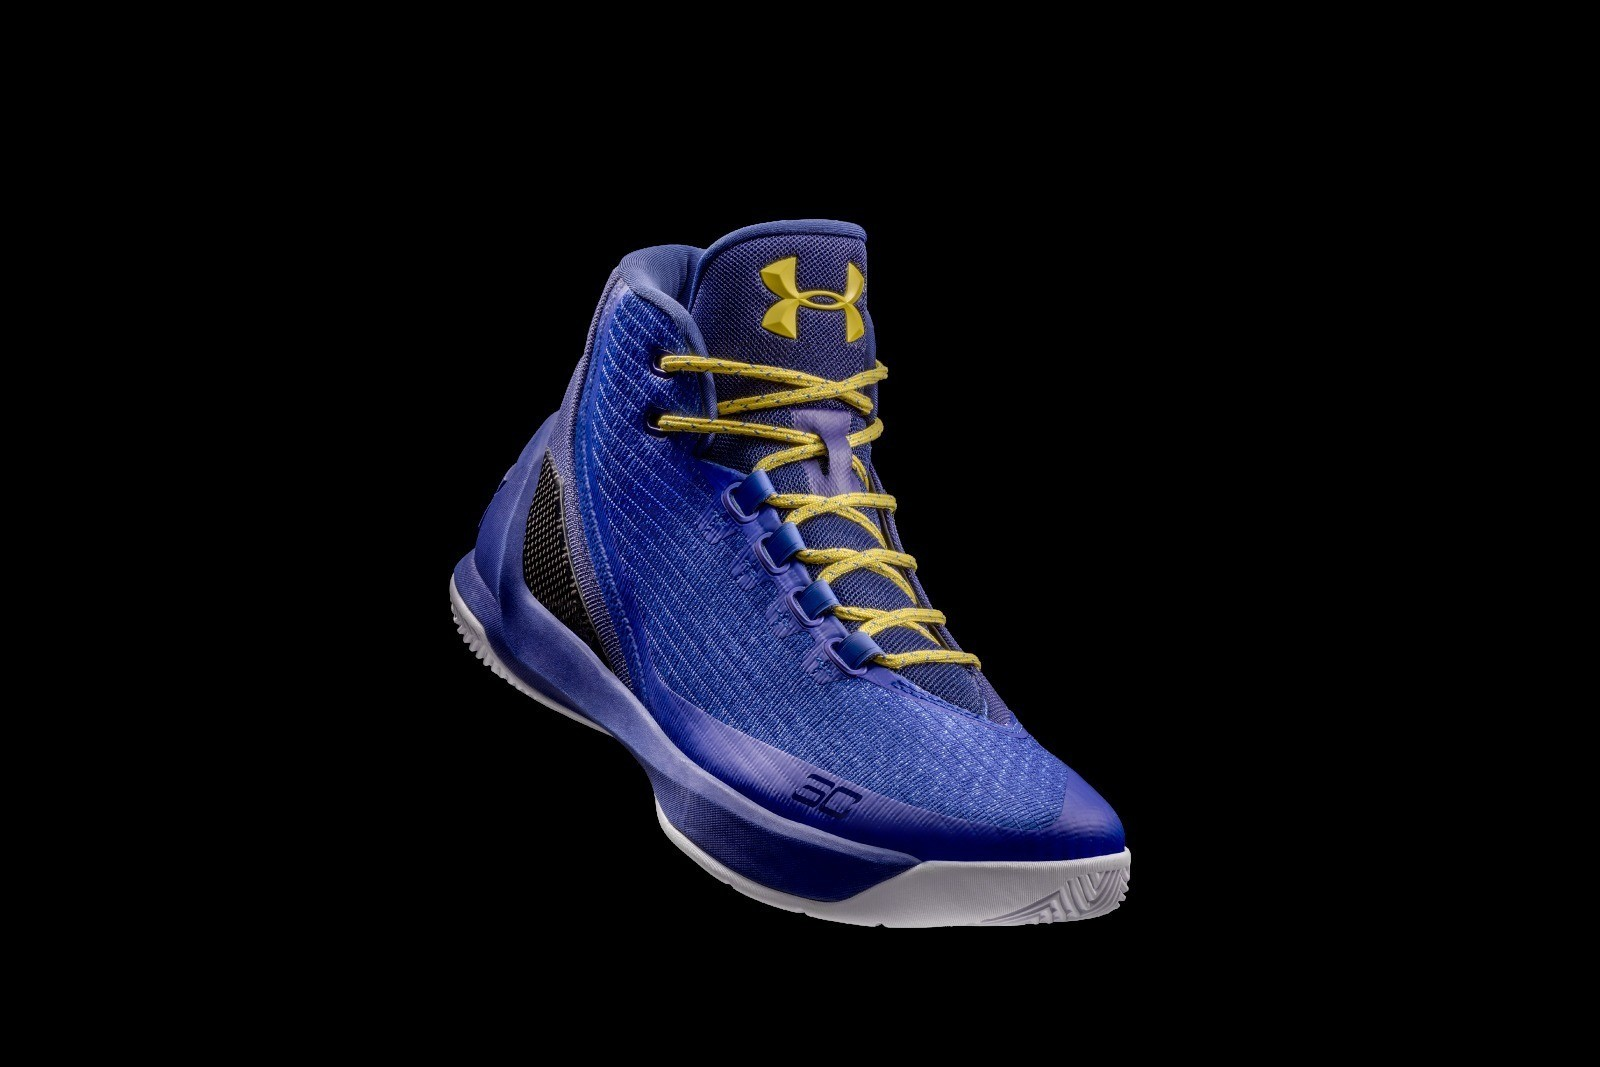 Under Armour releases Curry 3 shoe design 642e194cc8